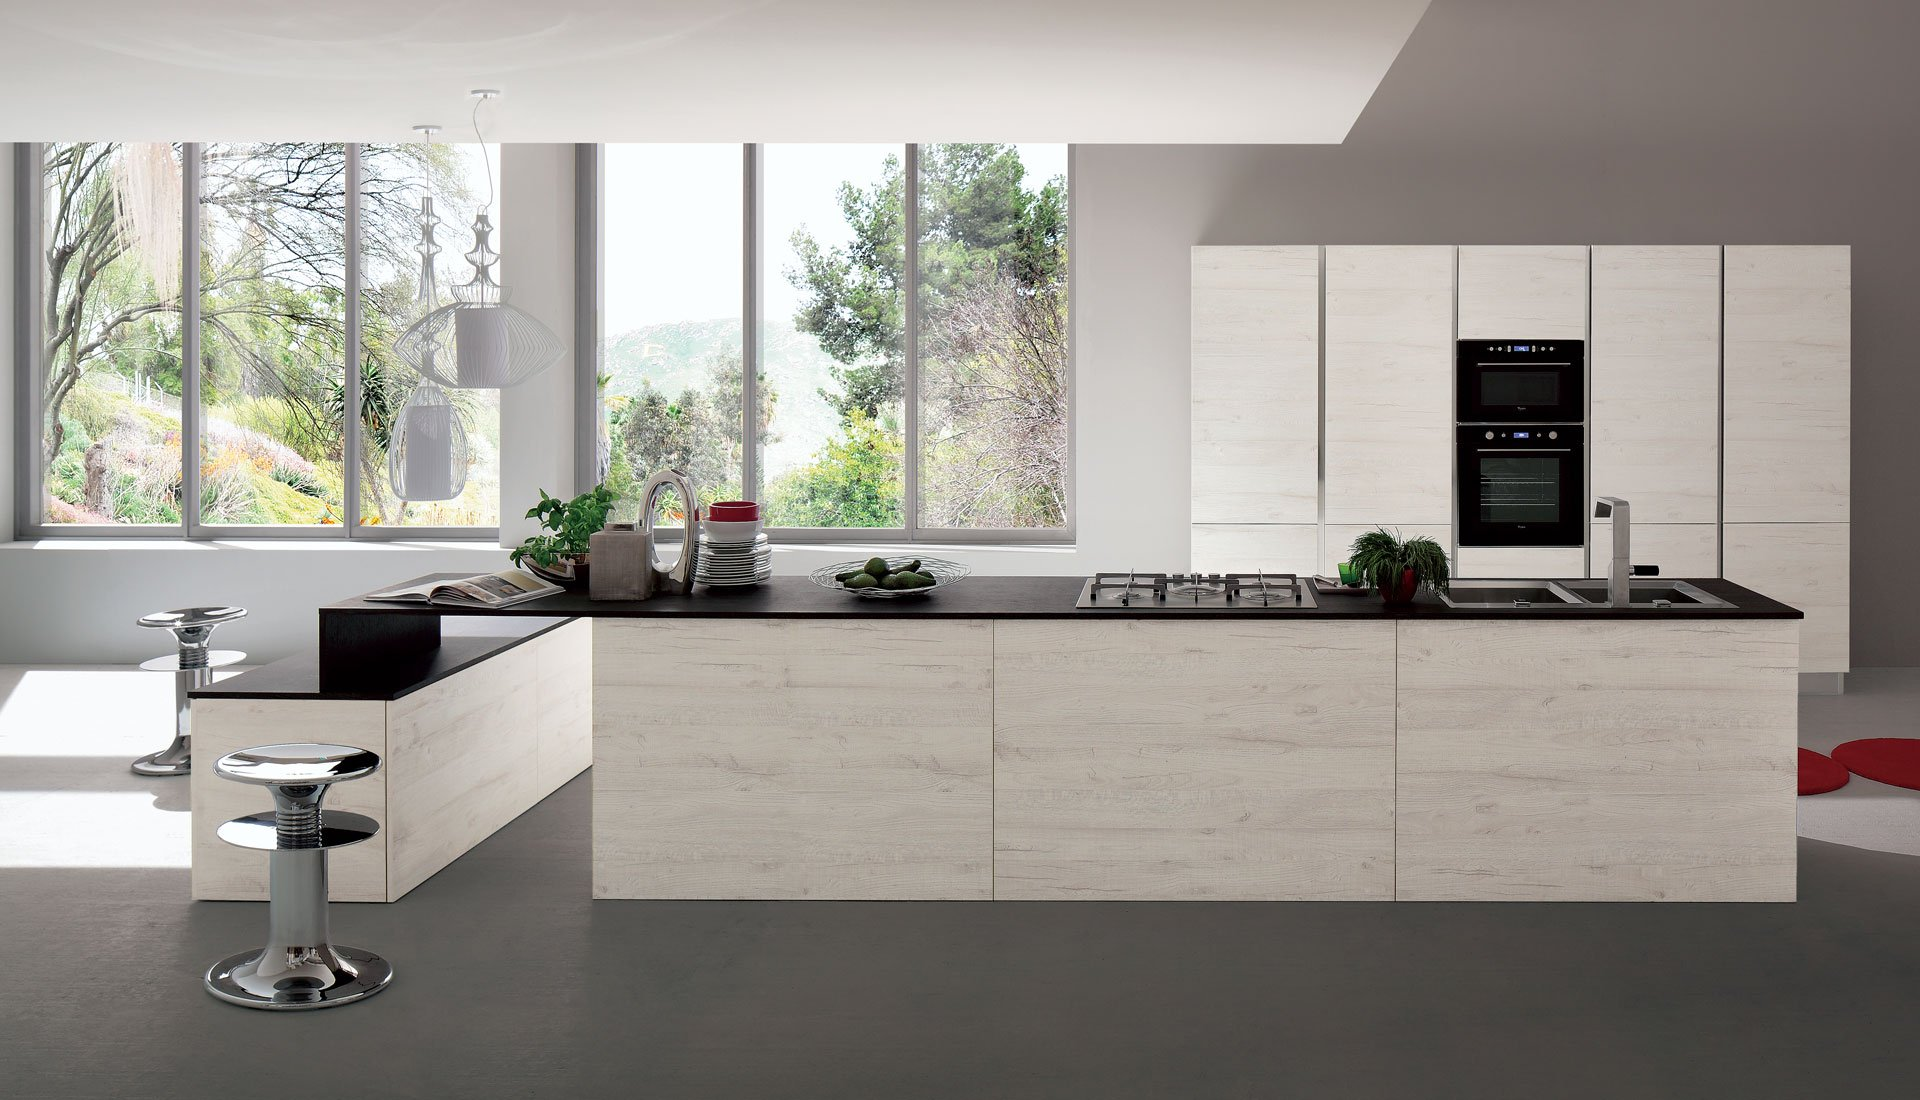 Cucina Rovere Sbiancato.Cucine Moderne In Rovere Sbiancato